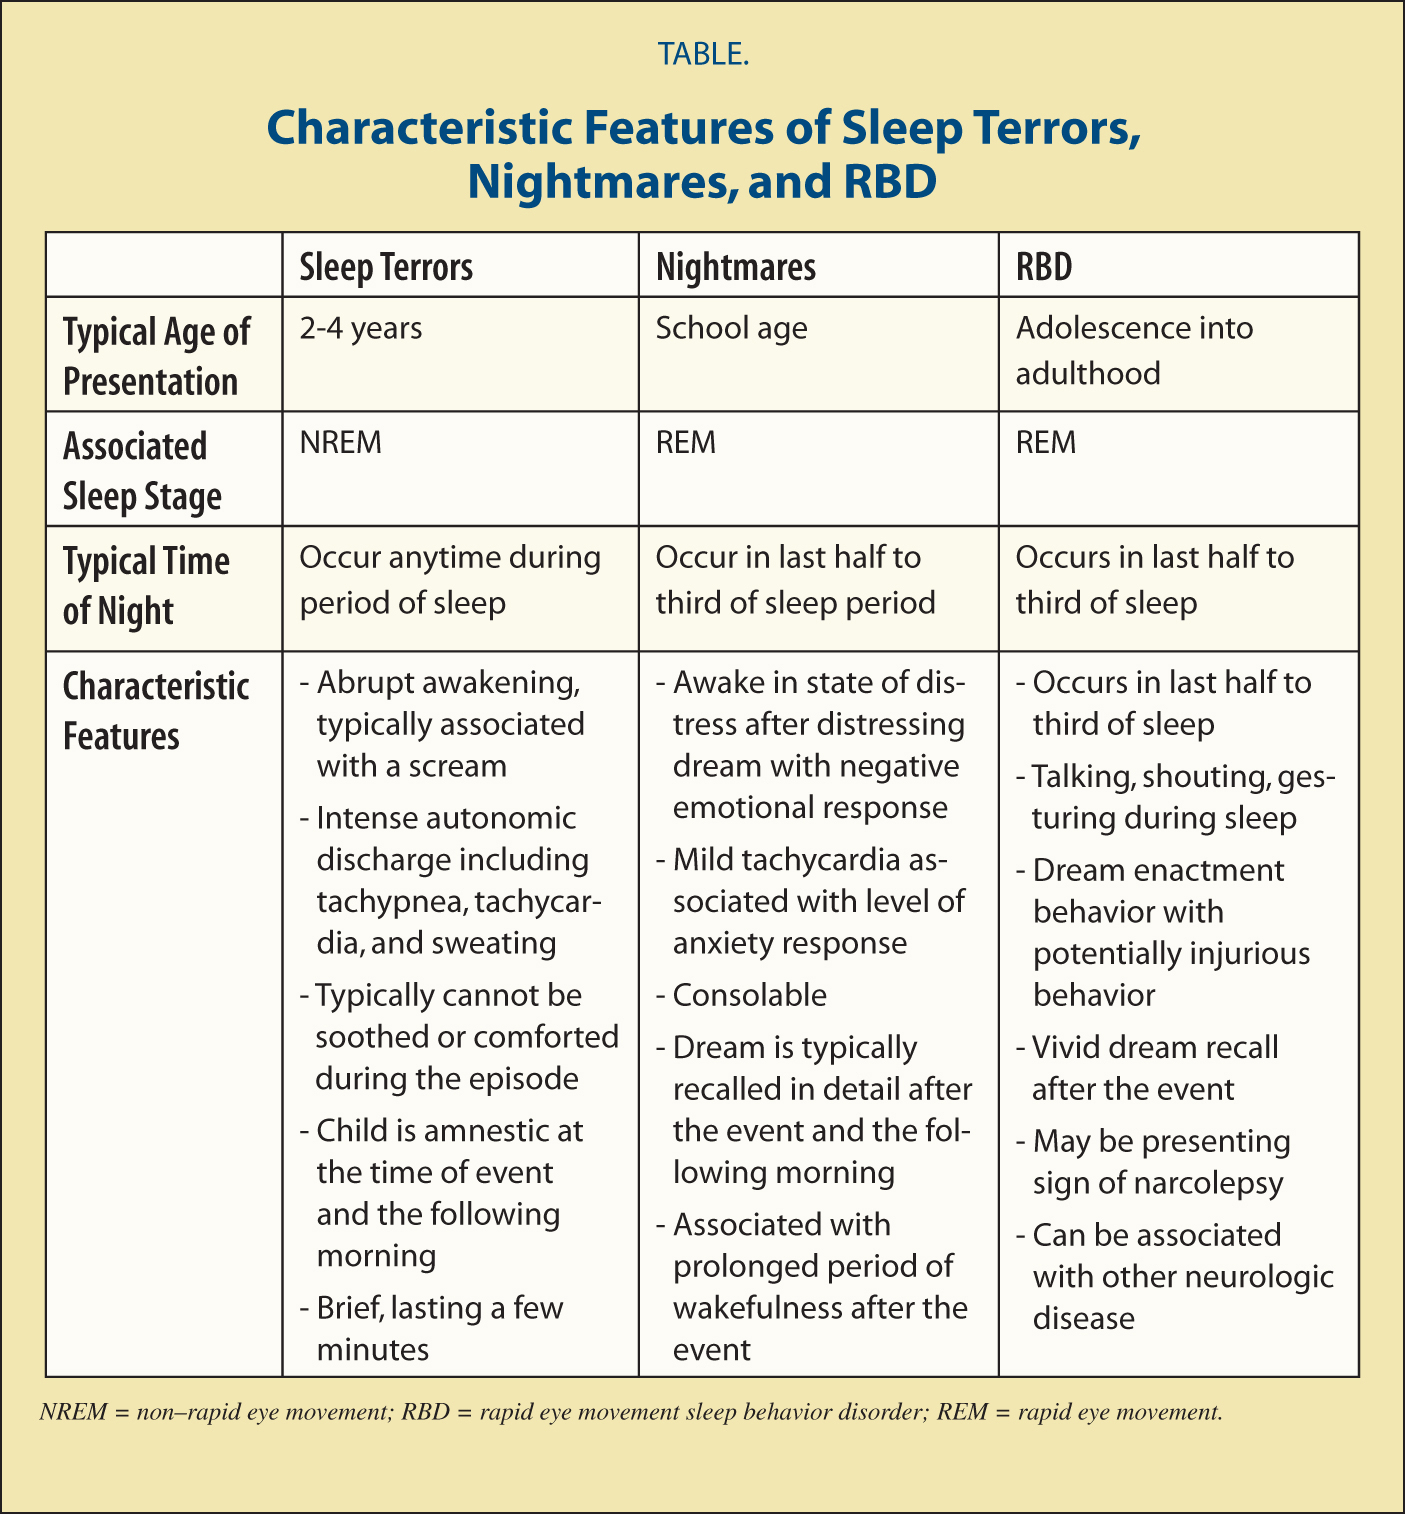 Characteristic Features of Sleep Terrors, Nightmares, and RBD